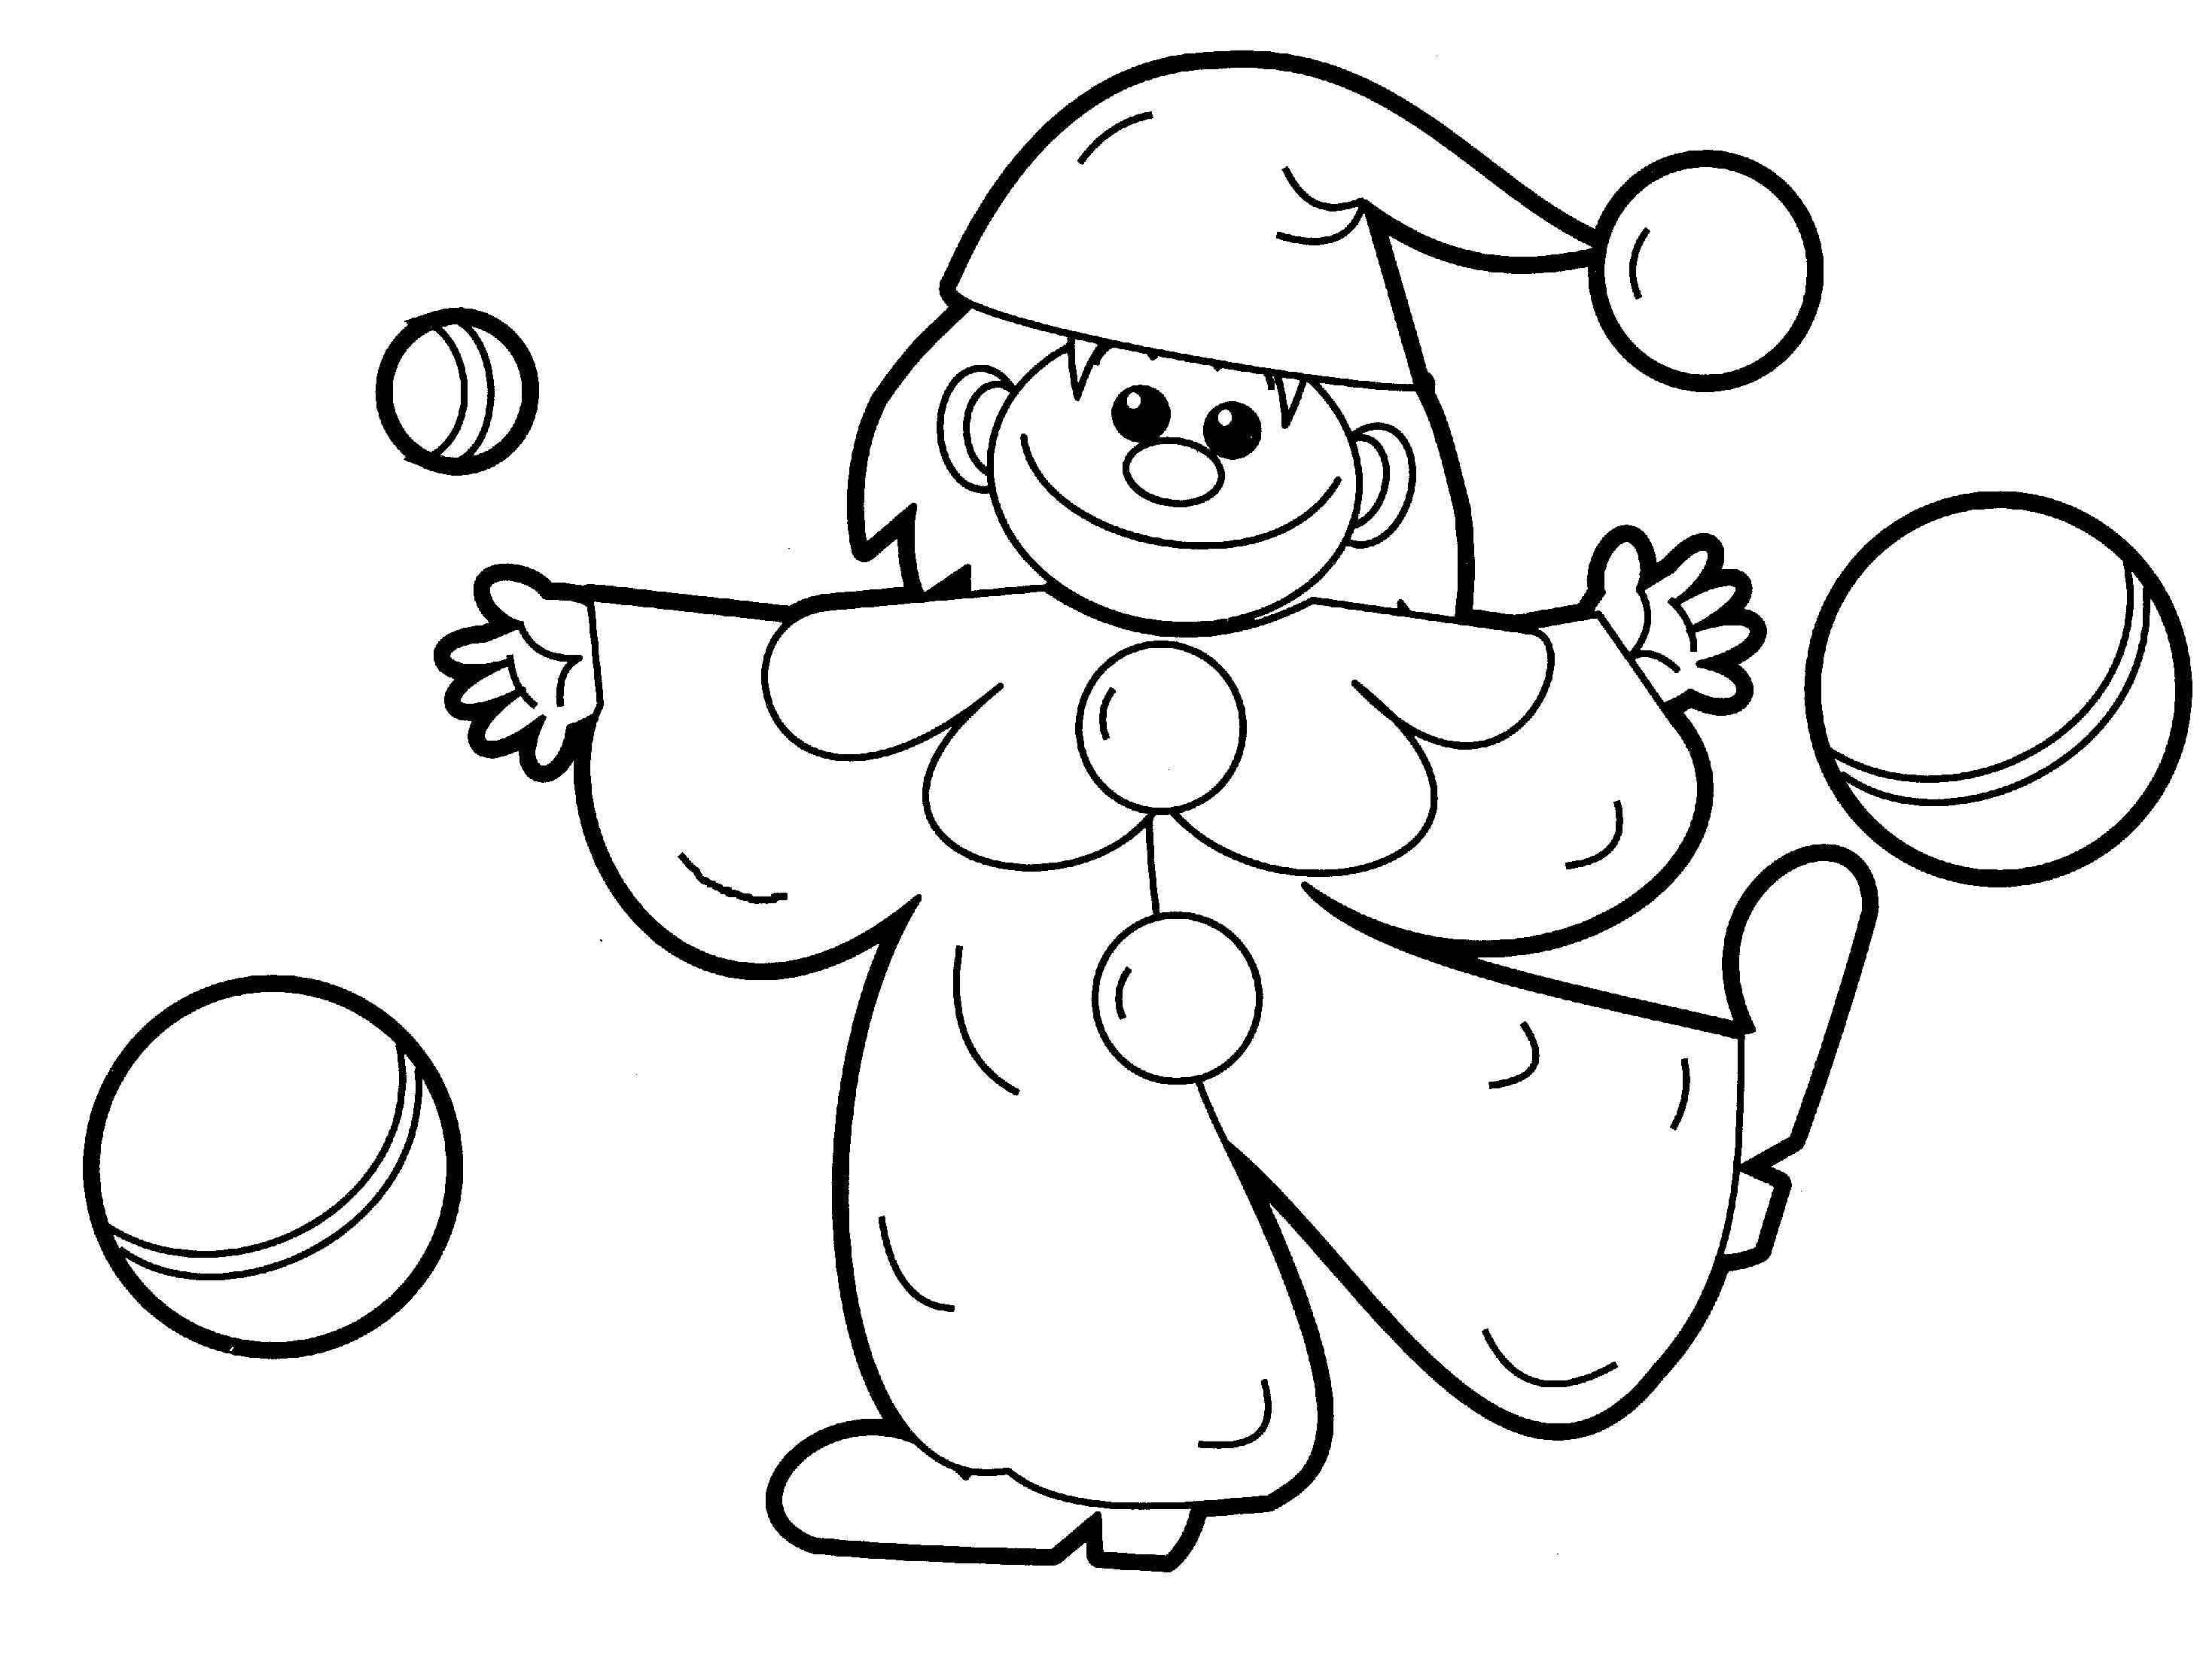 Toys Coloring Pages - Best Coloring Pages For Kids